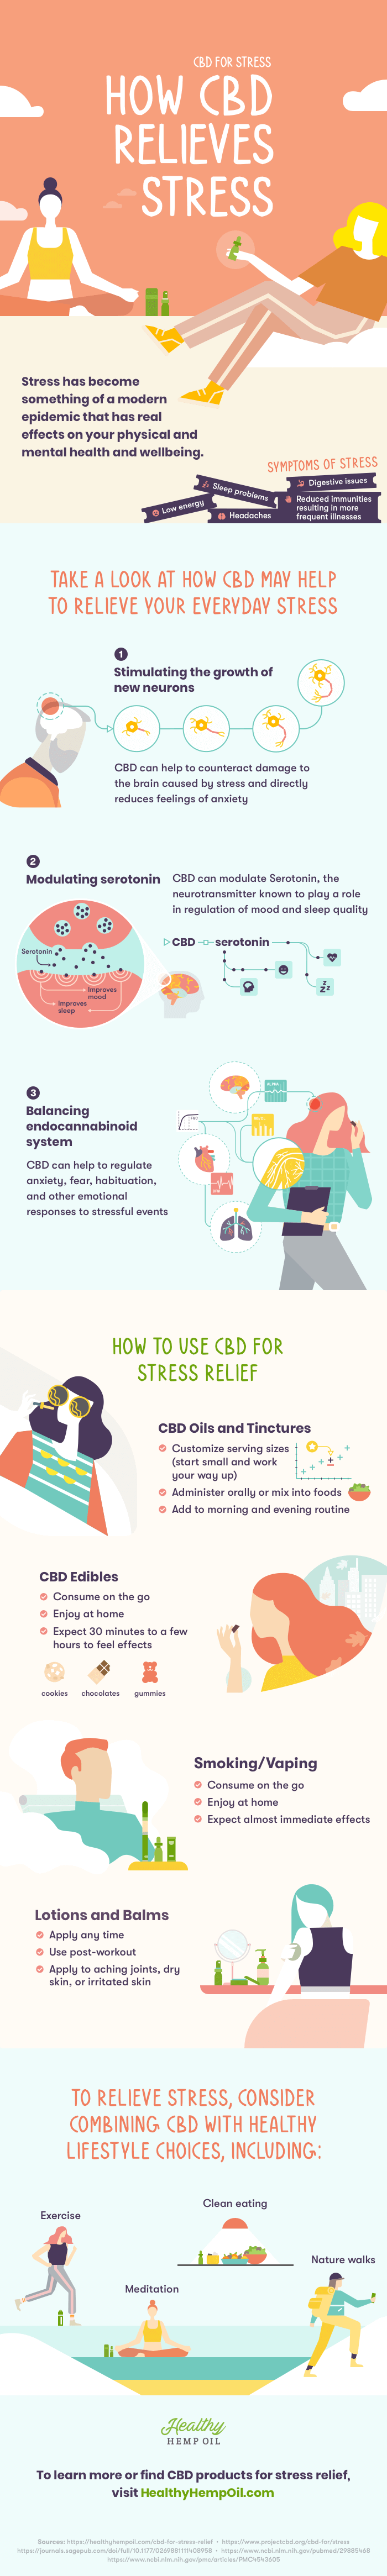 How CBD Relieves Stress